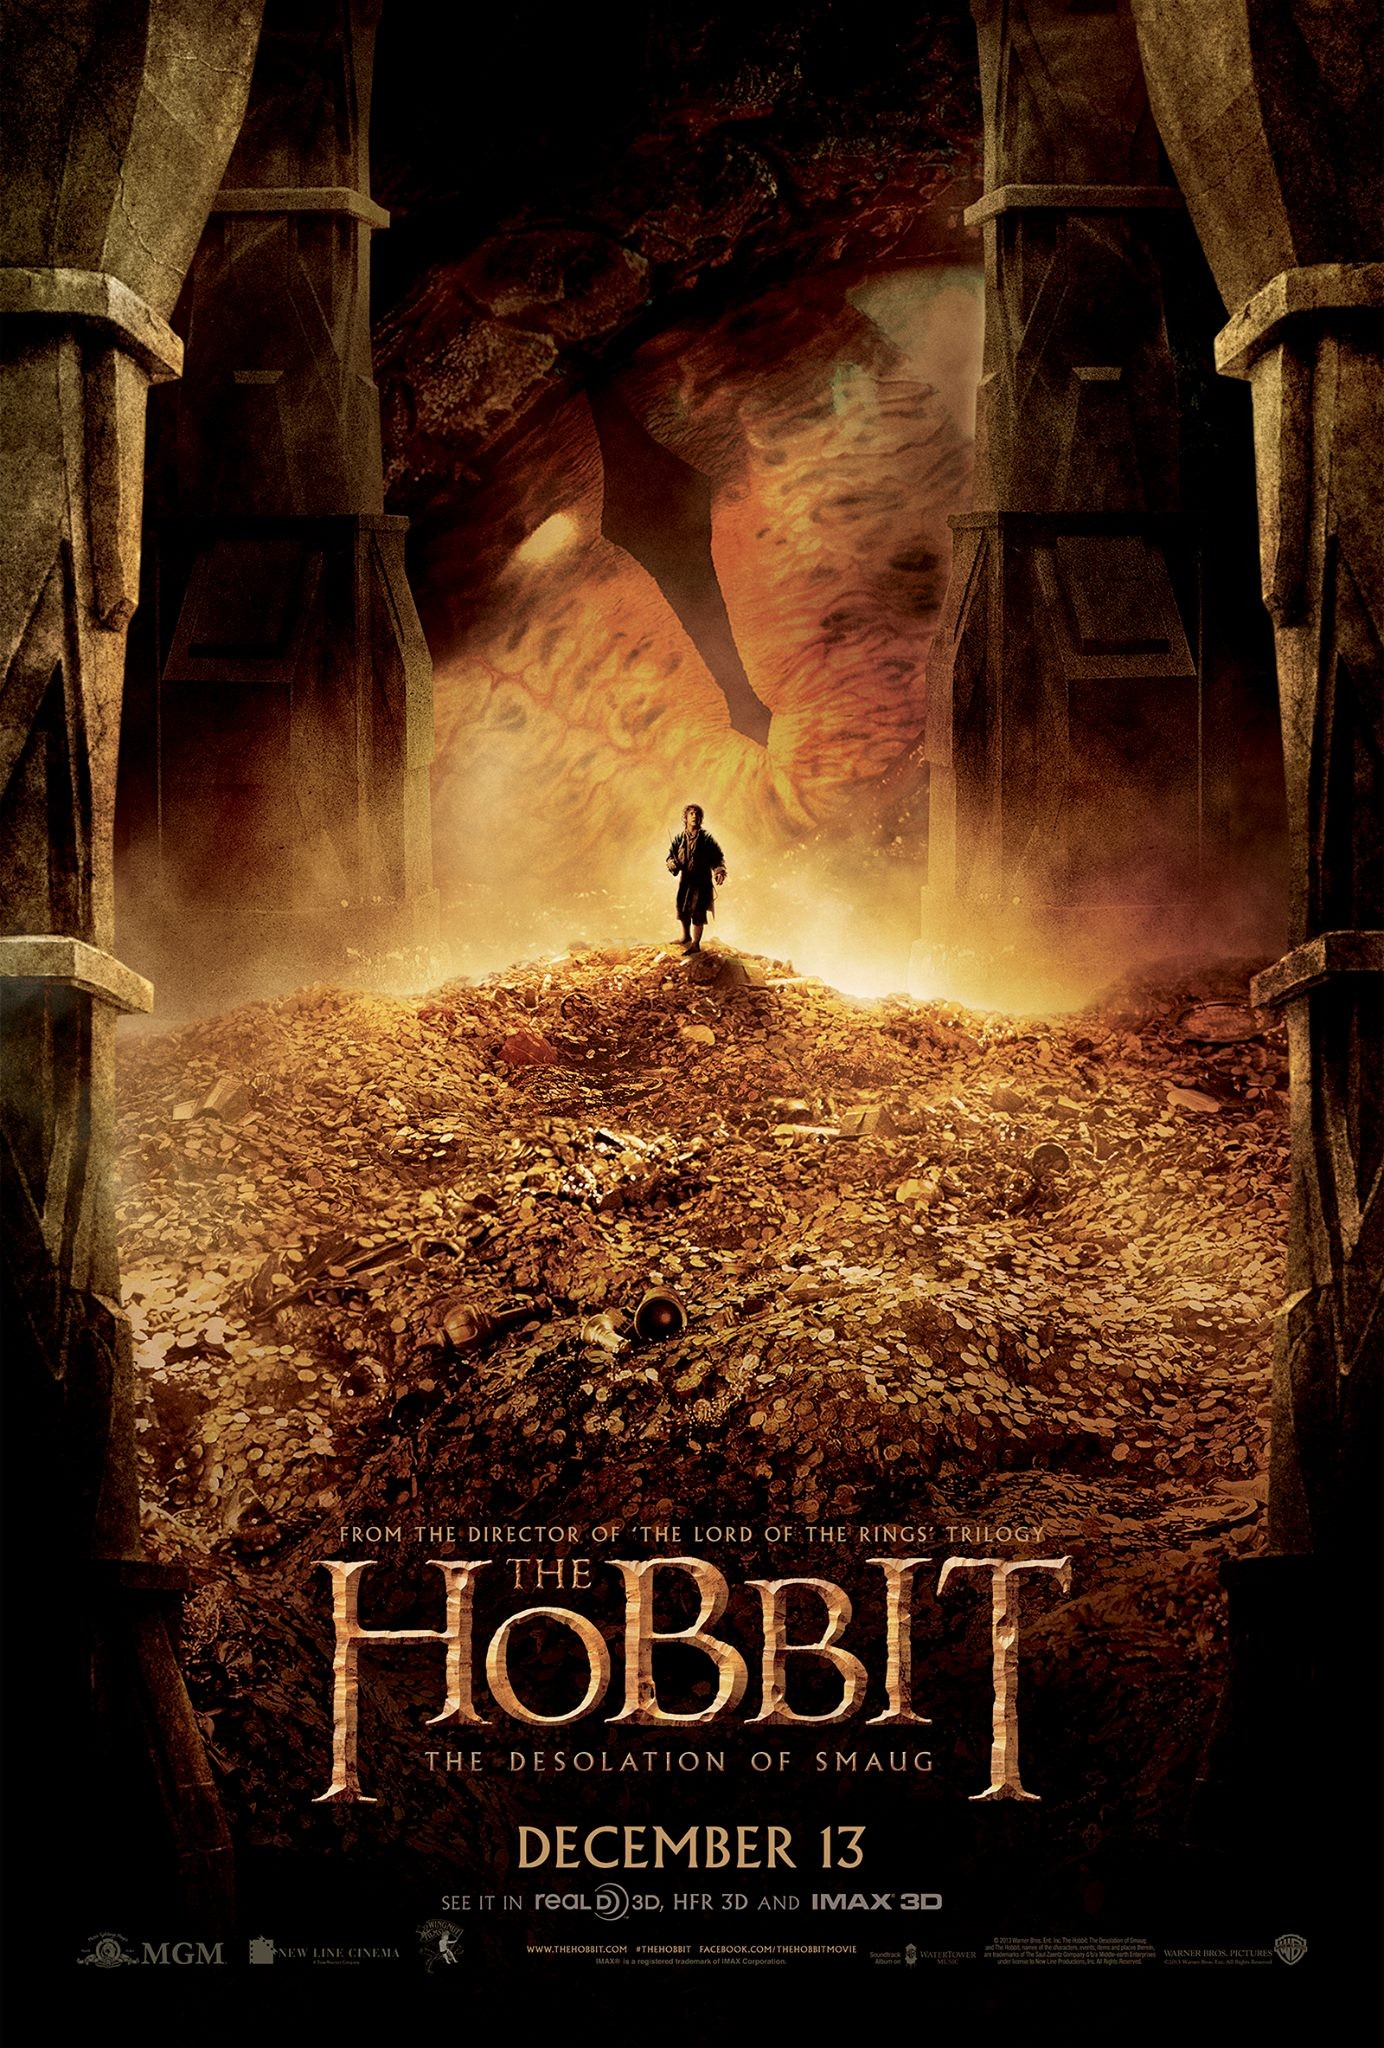 the-hobbit-the-desolation-of-smaug-poster-30 – We Geek Girls